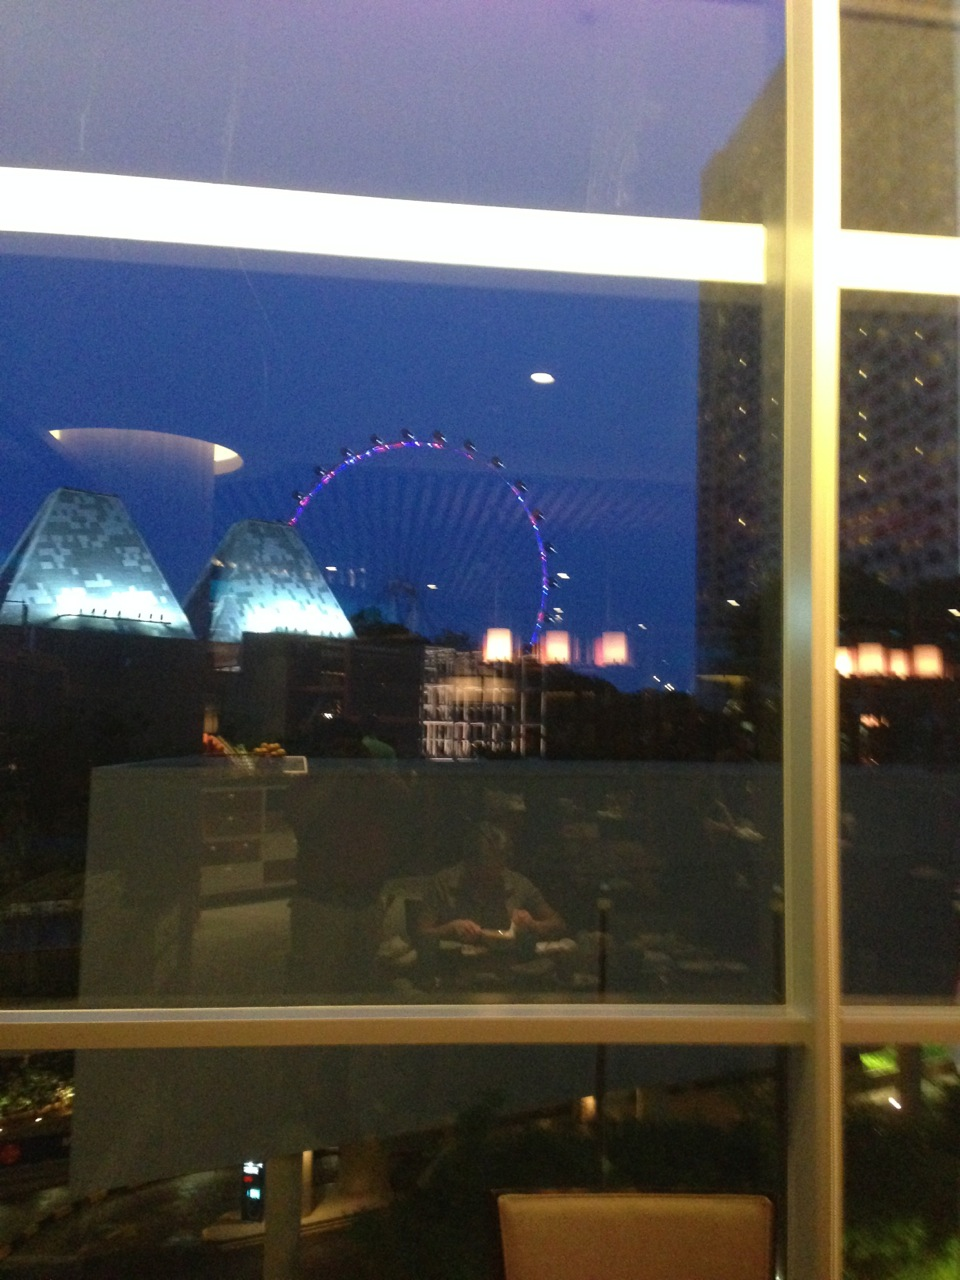 Excellent view of the Singapore Flyer